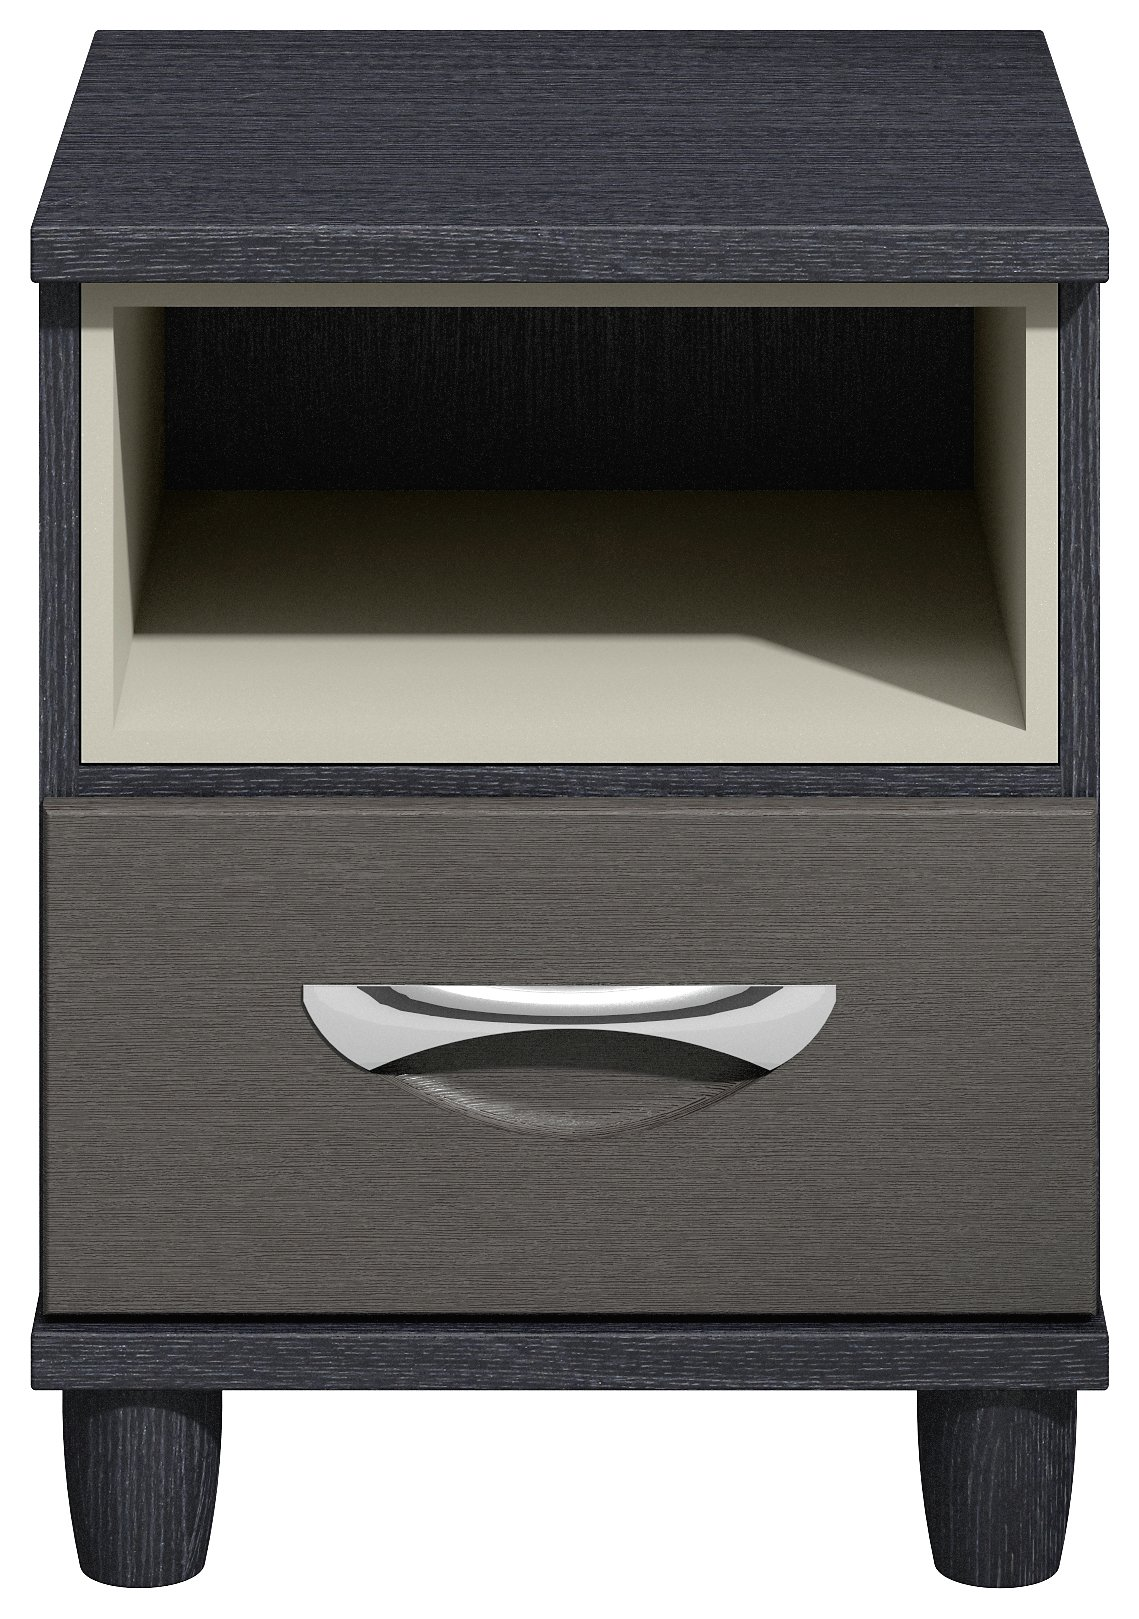 Myra 1 Drawer Bedside Chest - Black Oak Effect